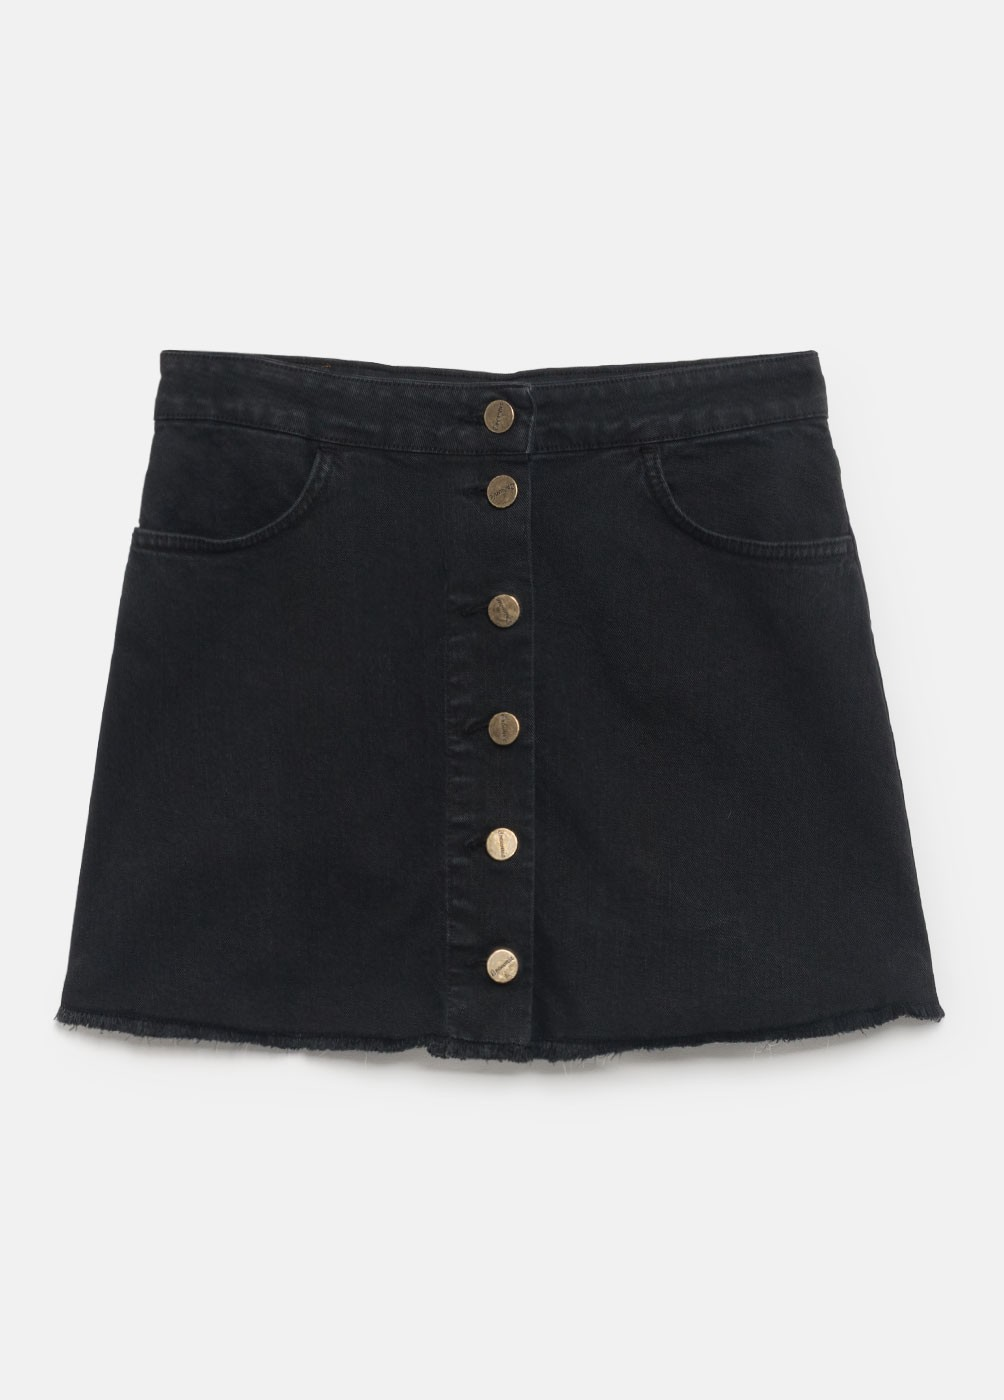 BUTTON SKIRT WITH POCKETS